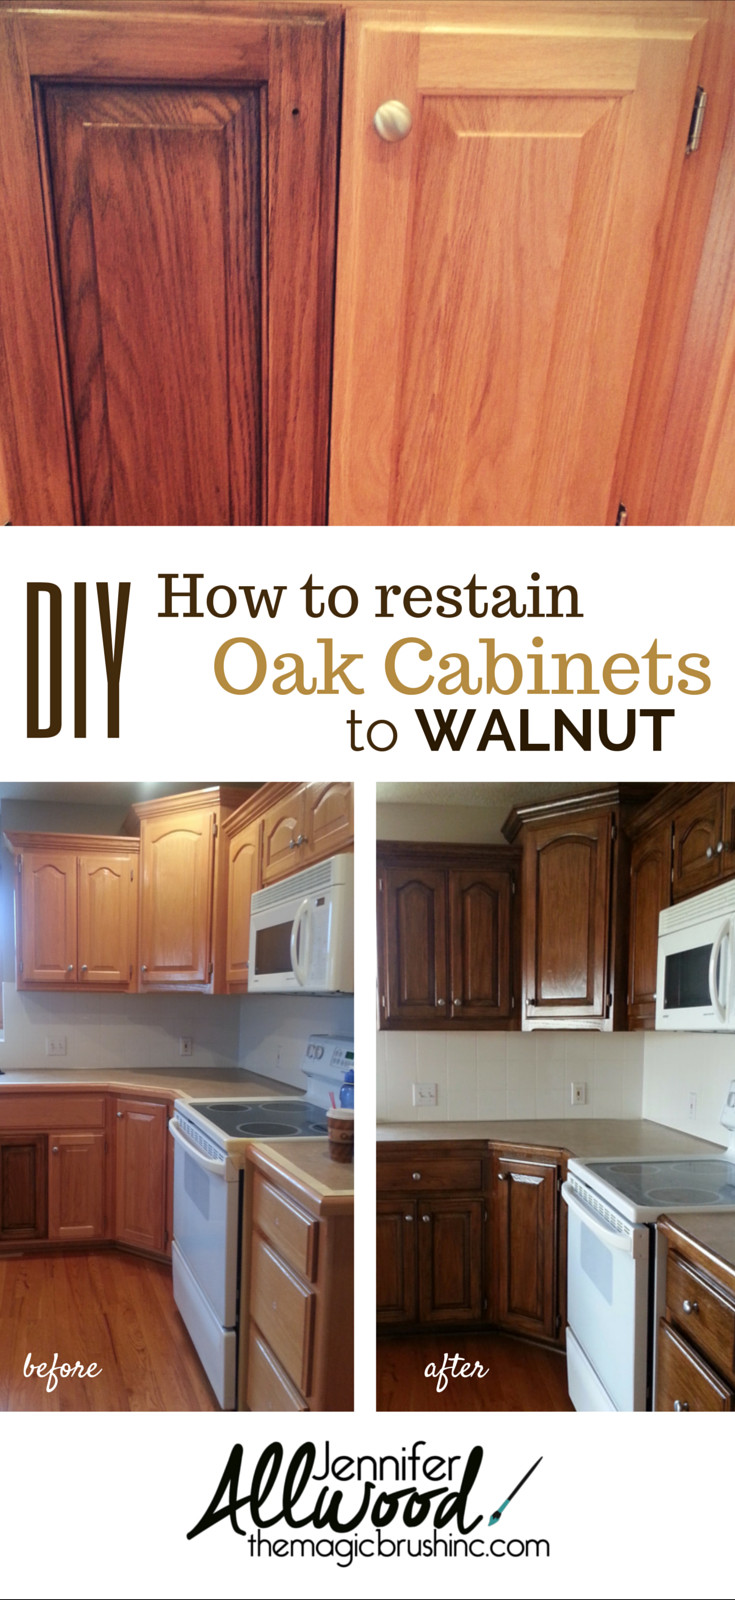 hardwood floor refinishing naperville il of cabinets and furniture finishes how to repair pinterest with regard to how to change your tired oak kitchen cabinets to a dark walnut stain themagicbrushinc coms video has step by step instructions products and trade